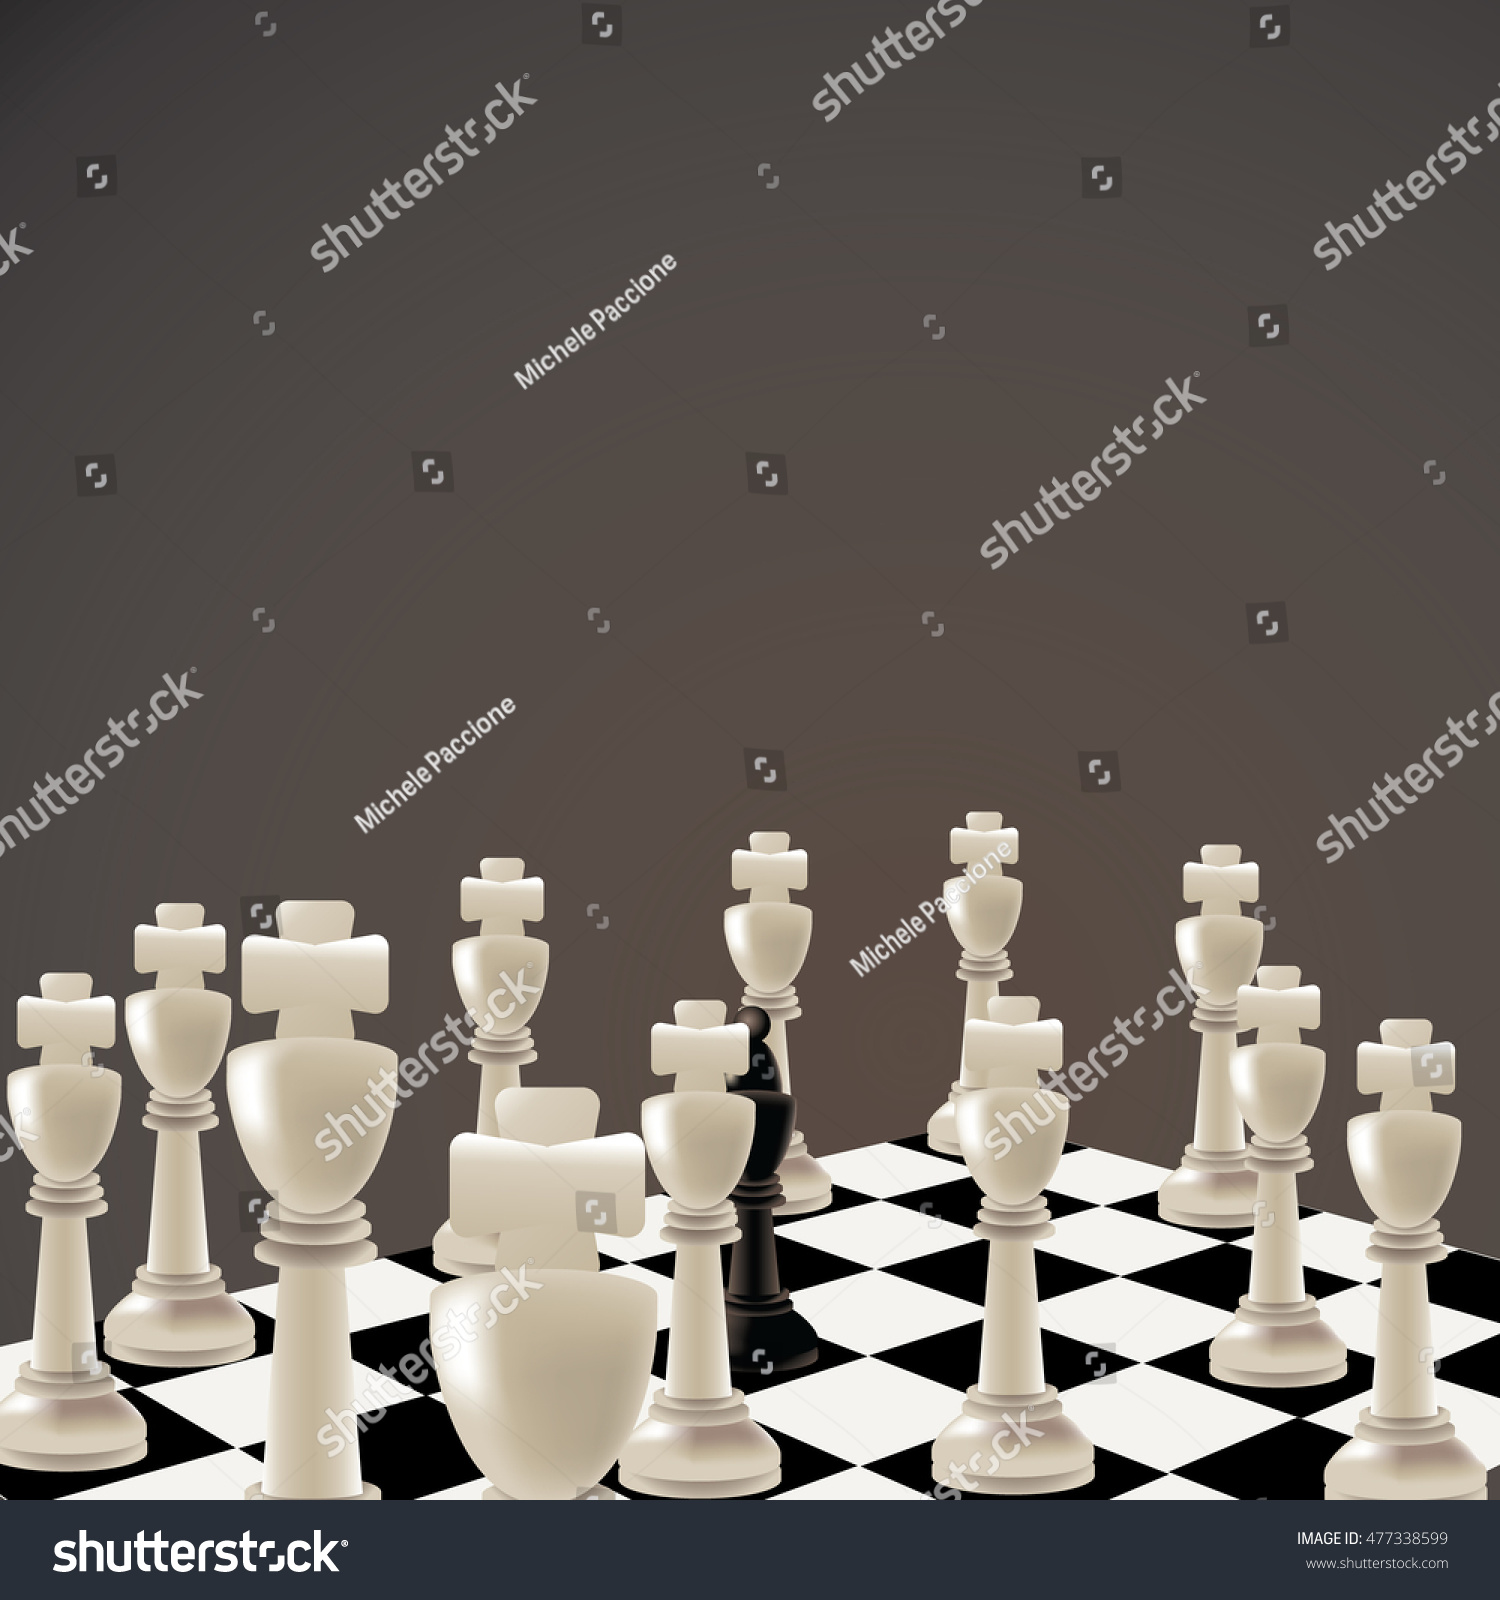 All white king chessboard with one partially hidden black queen eps 10 vector